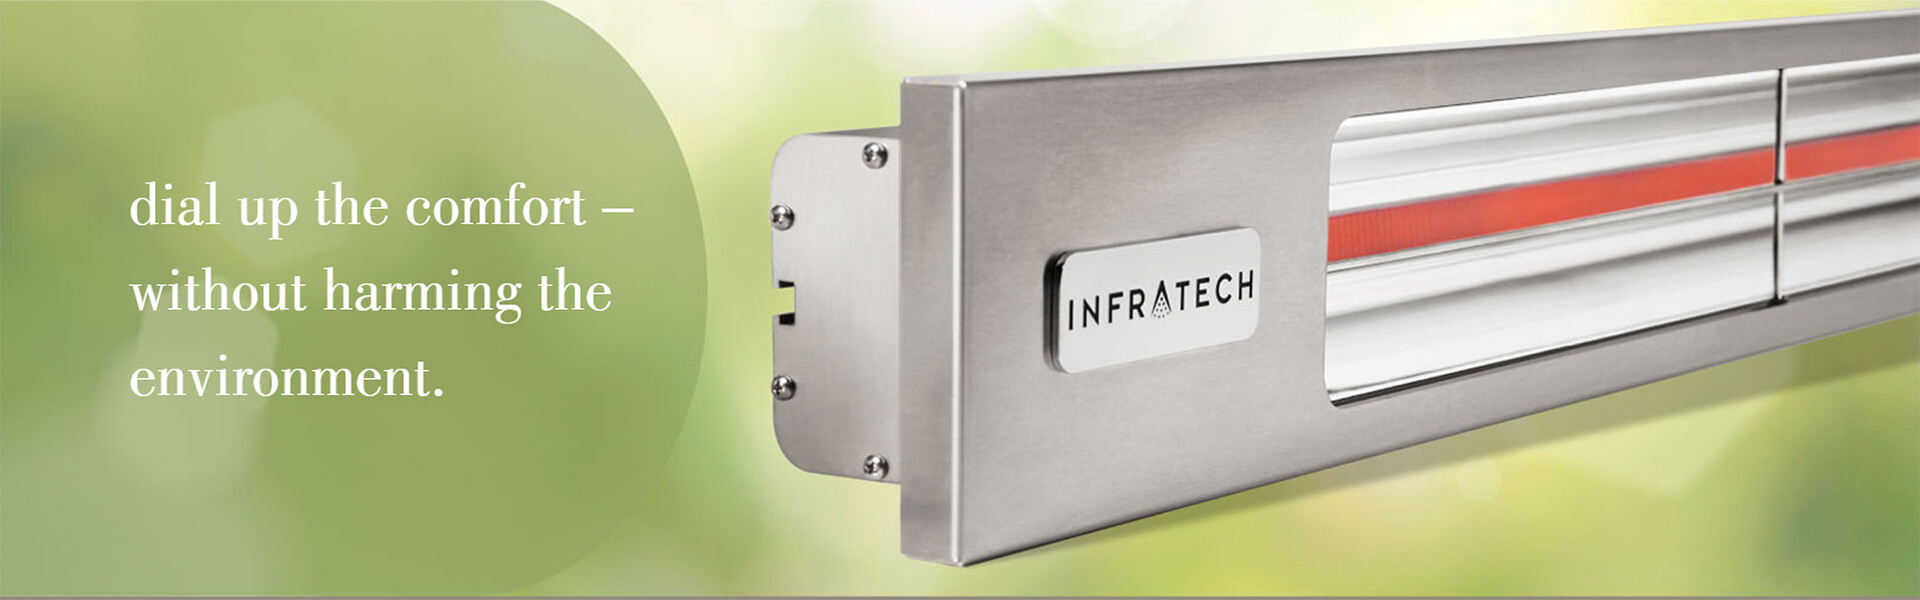 Infratech Technology